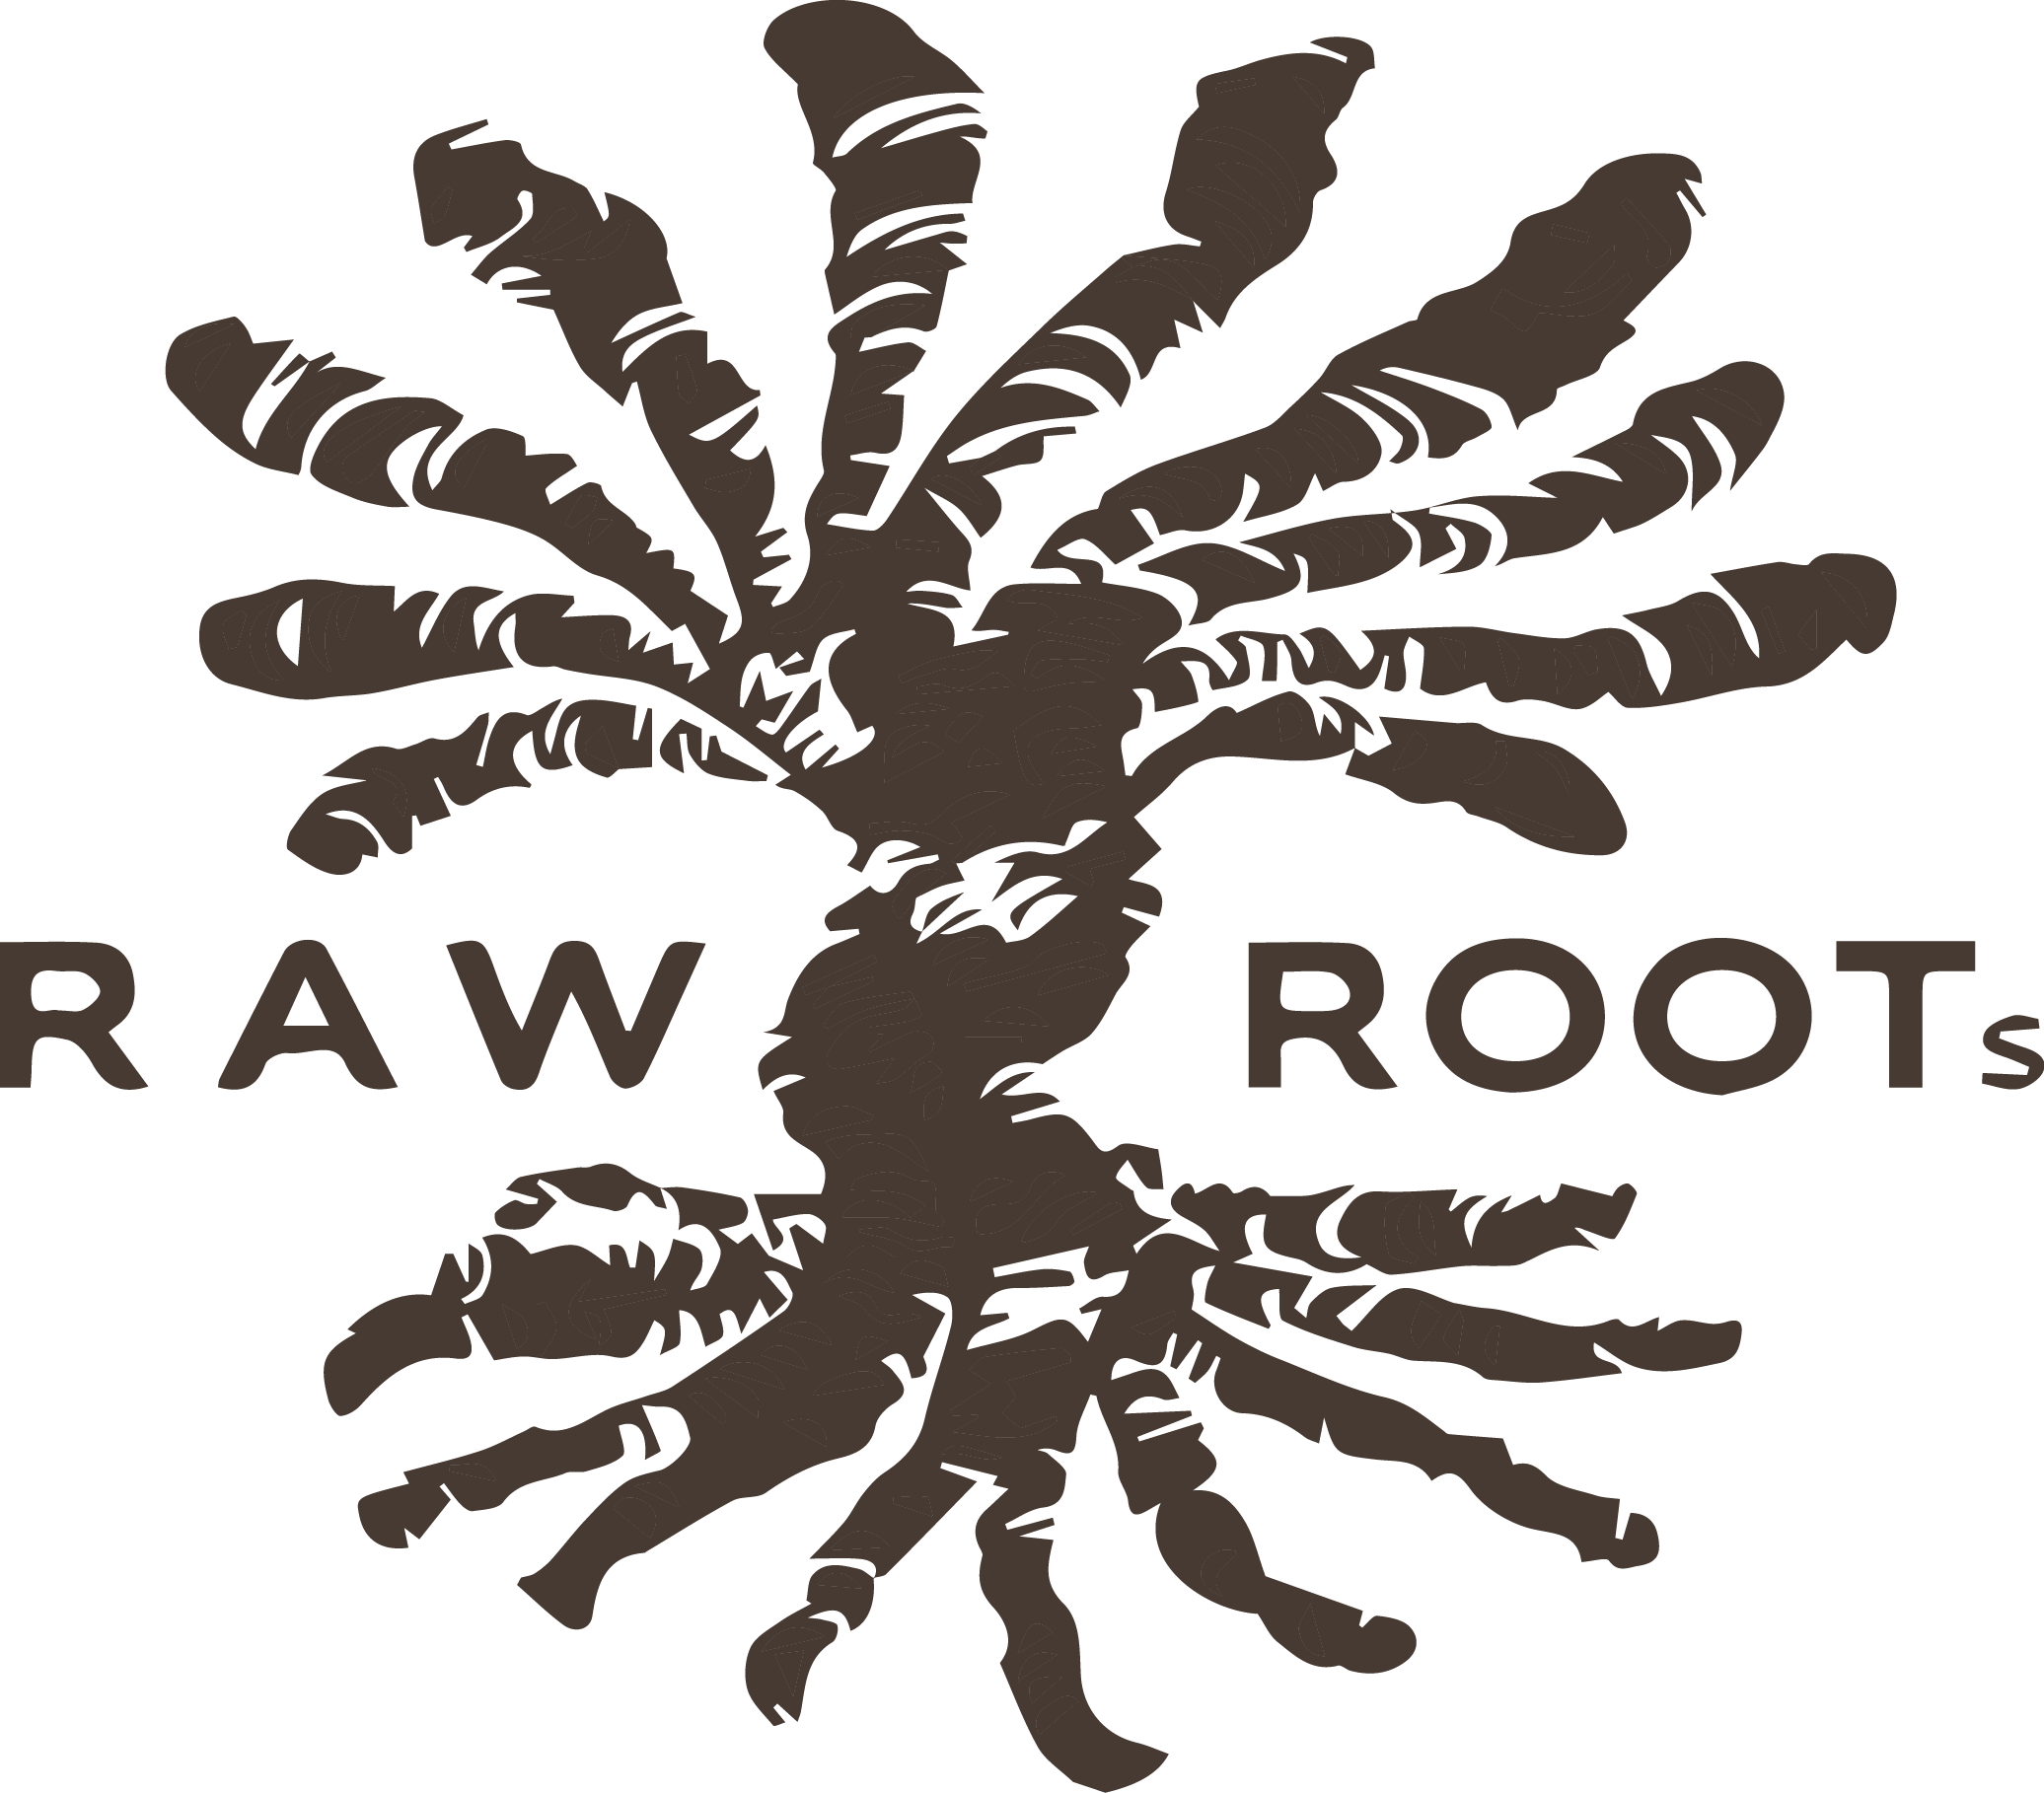 RAW ROOTs